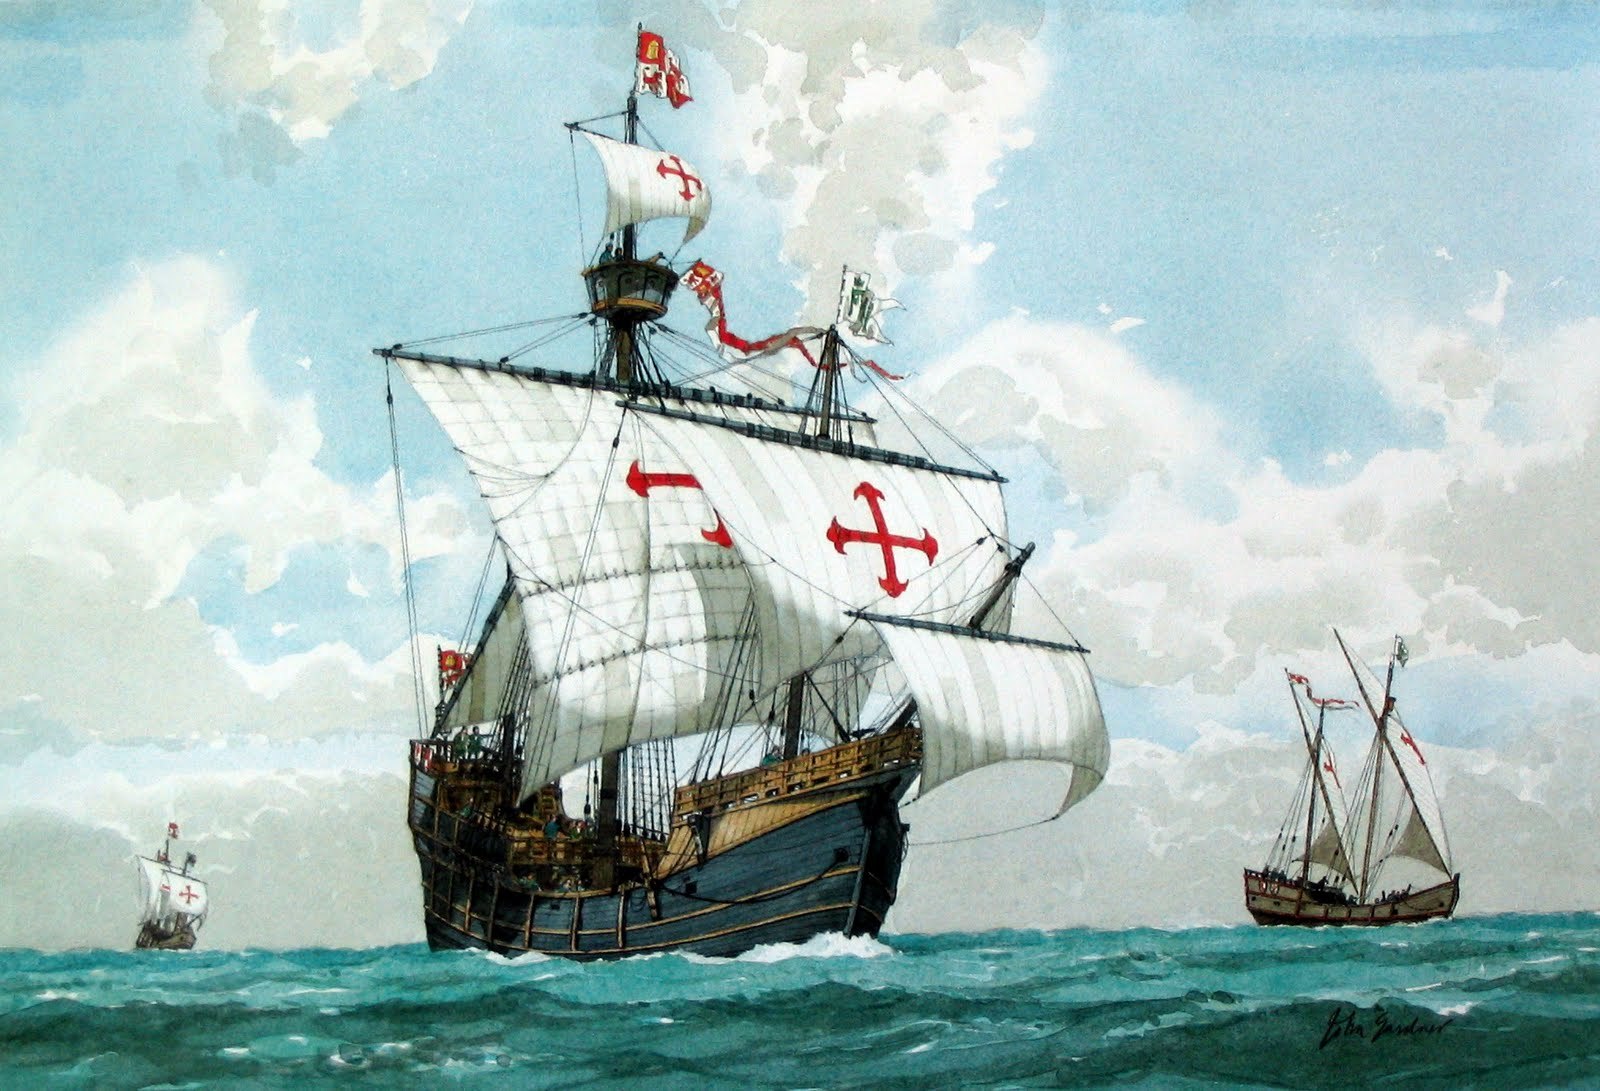 The Santa María, flagship of Christoper Columbus' expedition that discovered America.